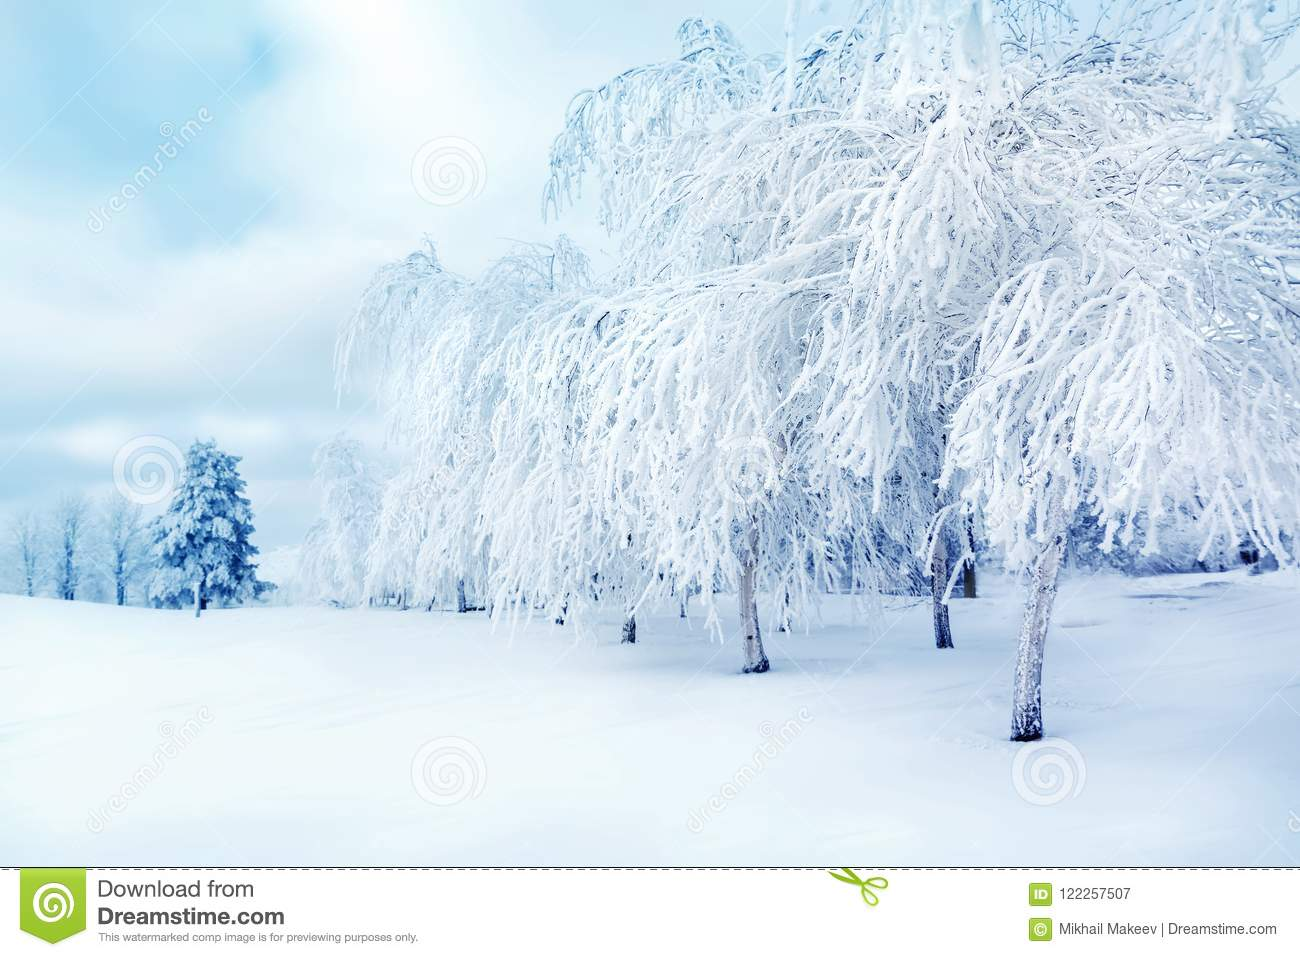 White trees in the snow in the city park. Beautiful winter landscape.